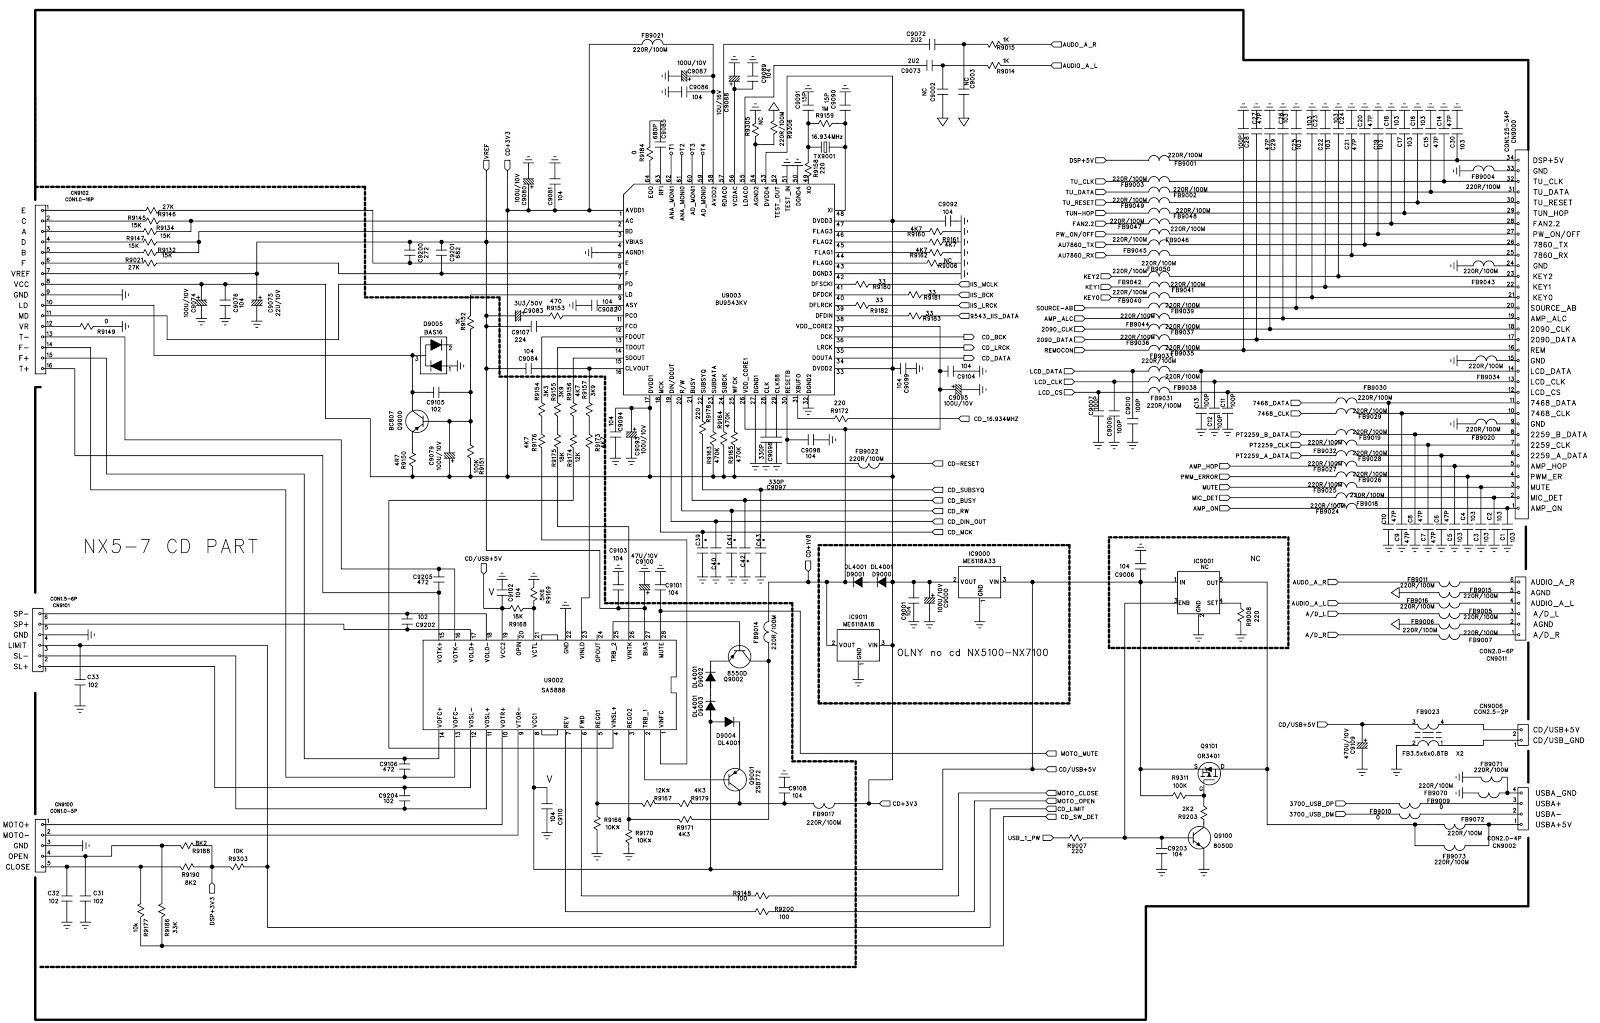 Subwoofer Board Diagram